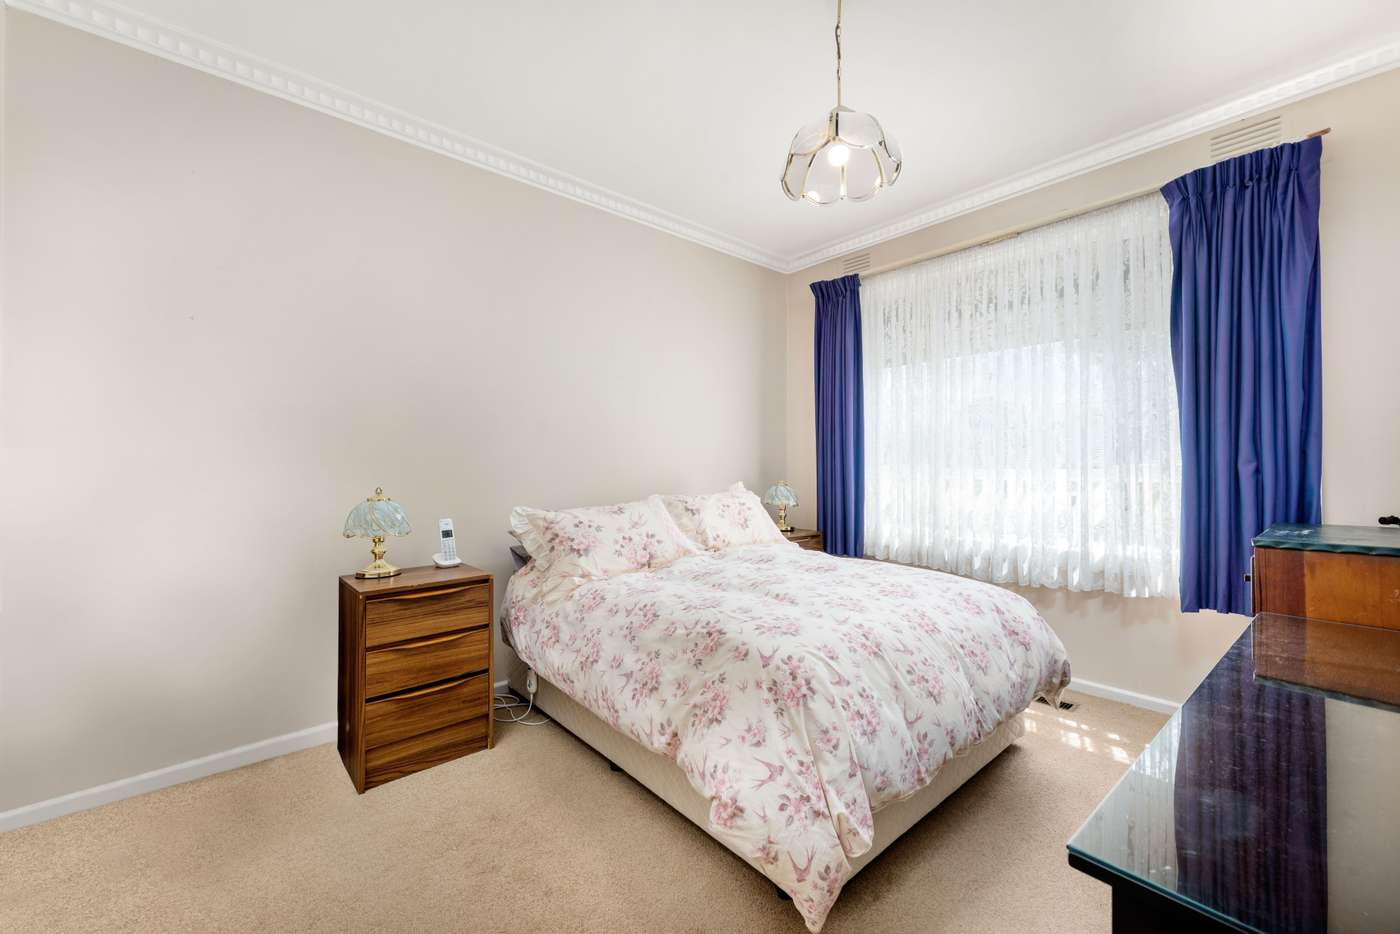 Sixth view of Homely house listing, 5 Flag Street, Kingsbury VIC 3083